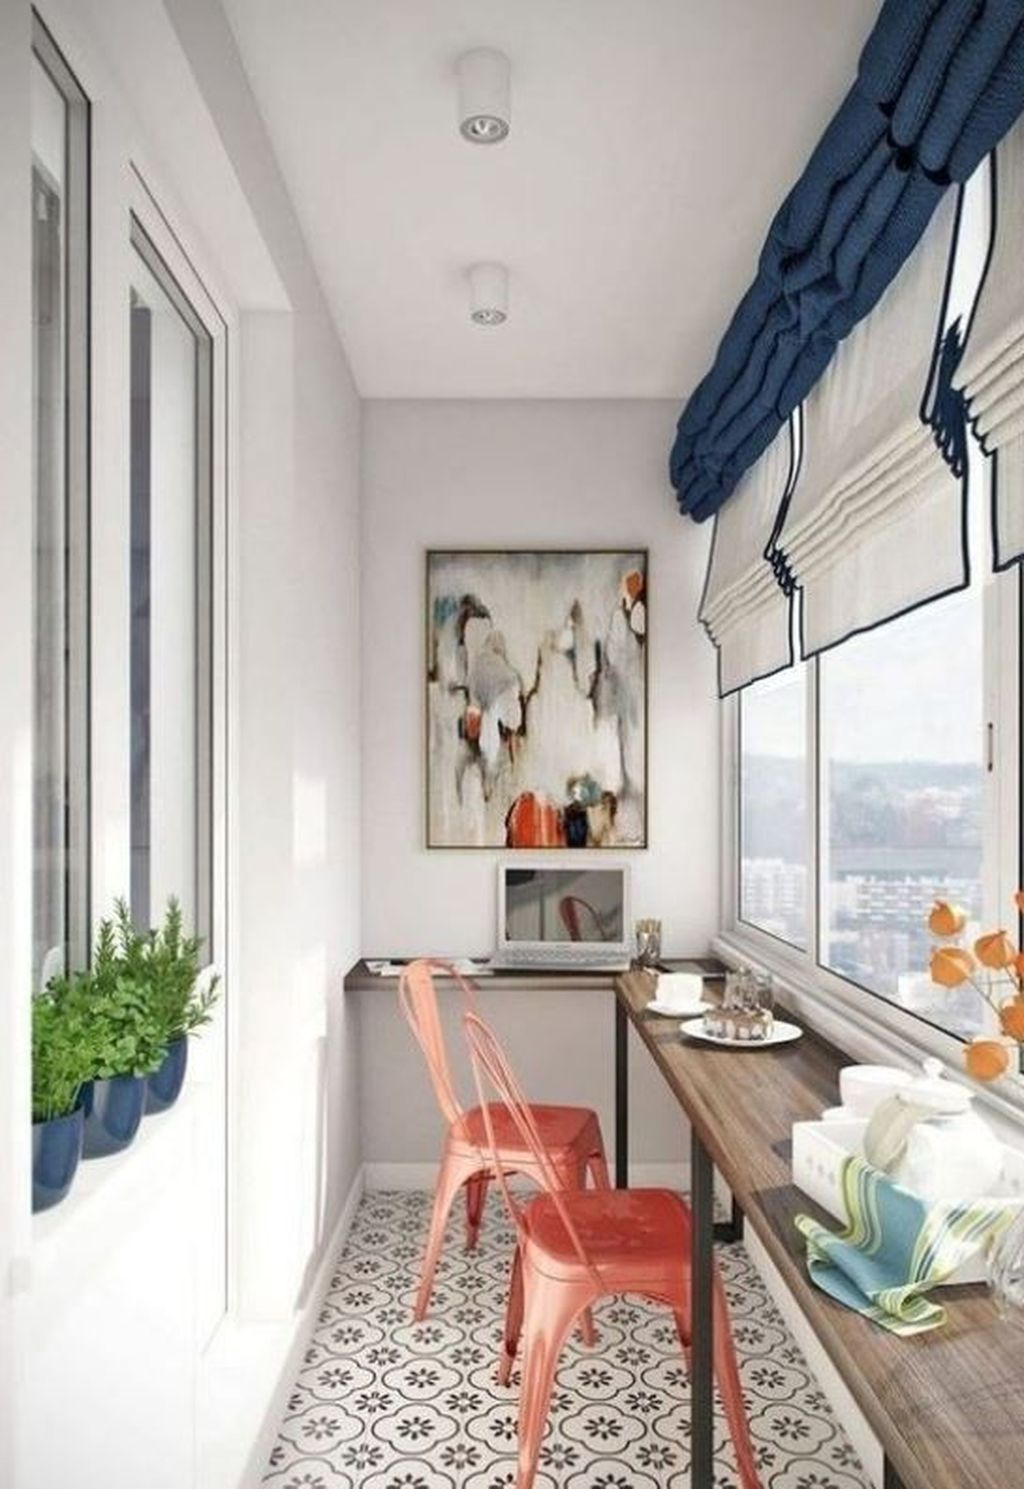 Enchanting Balcony Decoration Ideas For Apartment For A Cleaner Look 02